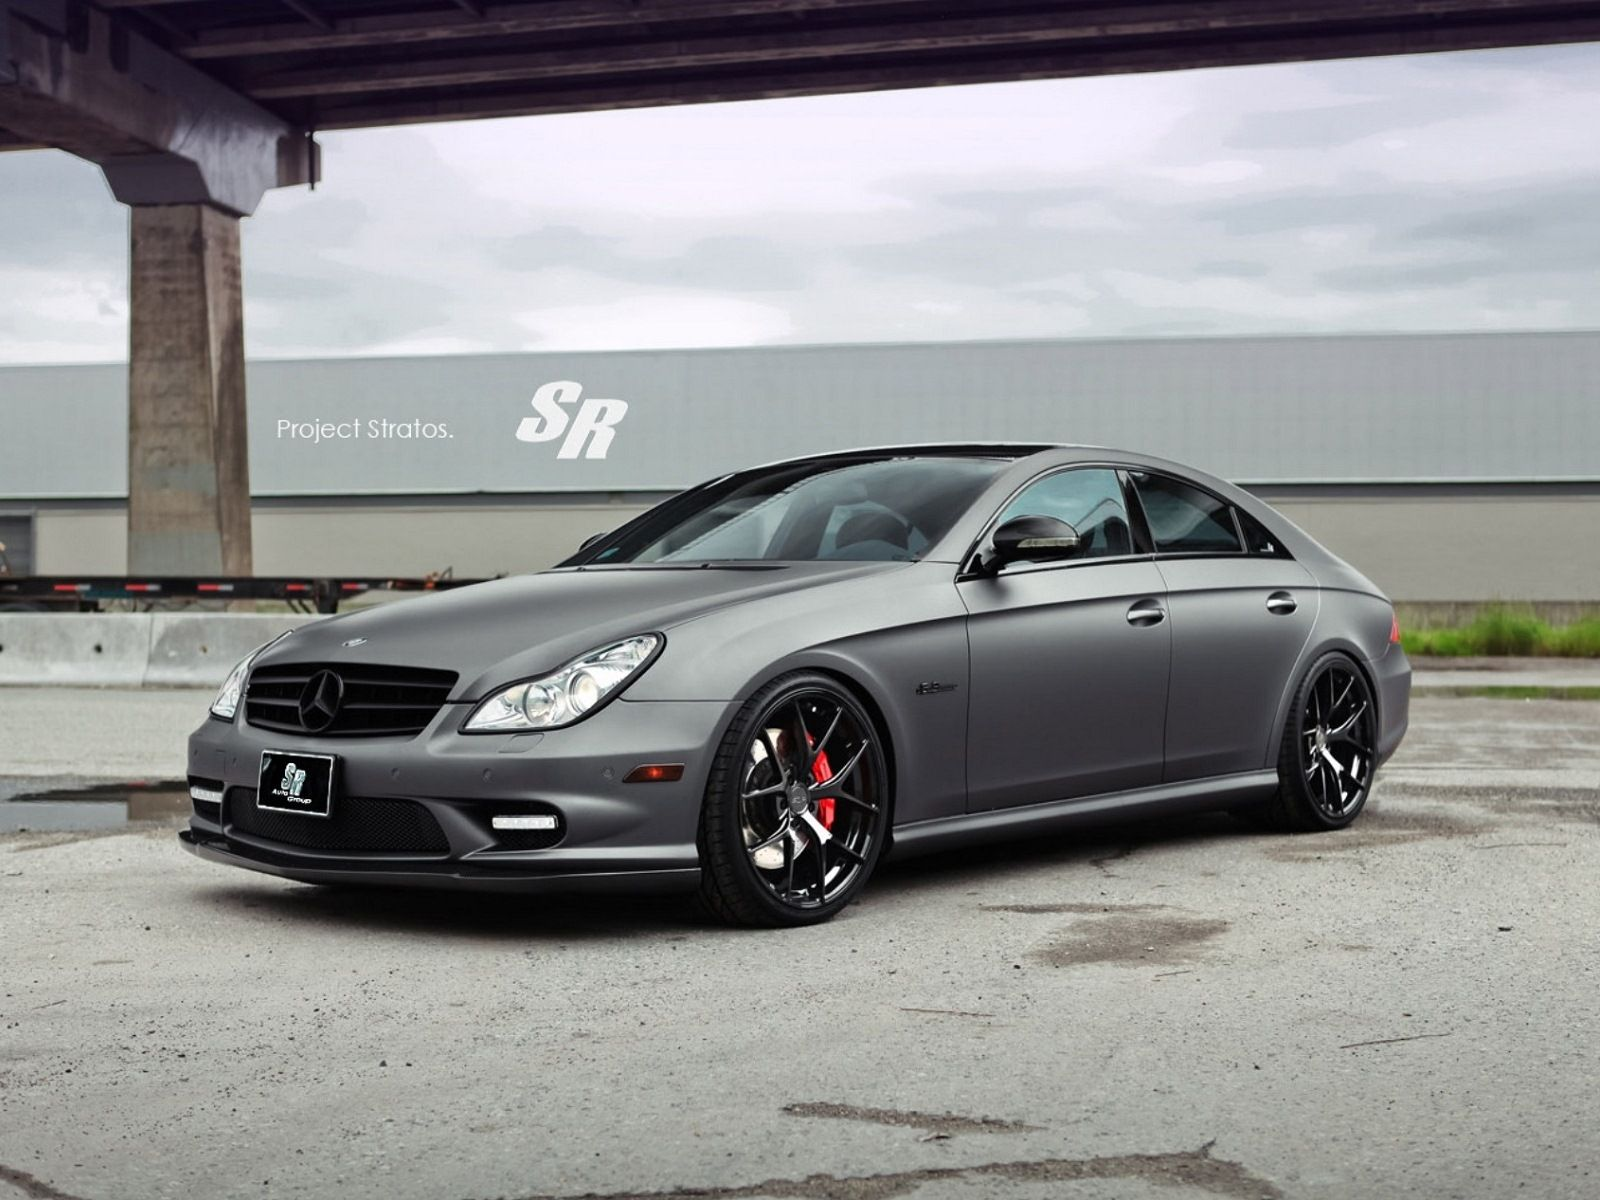 The new 2012 sr auto stratos mercedes benz cls 63 amg is one of the last modern car design with high performance